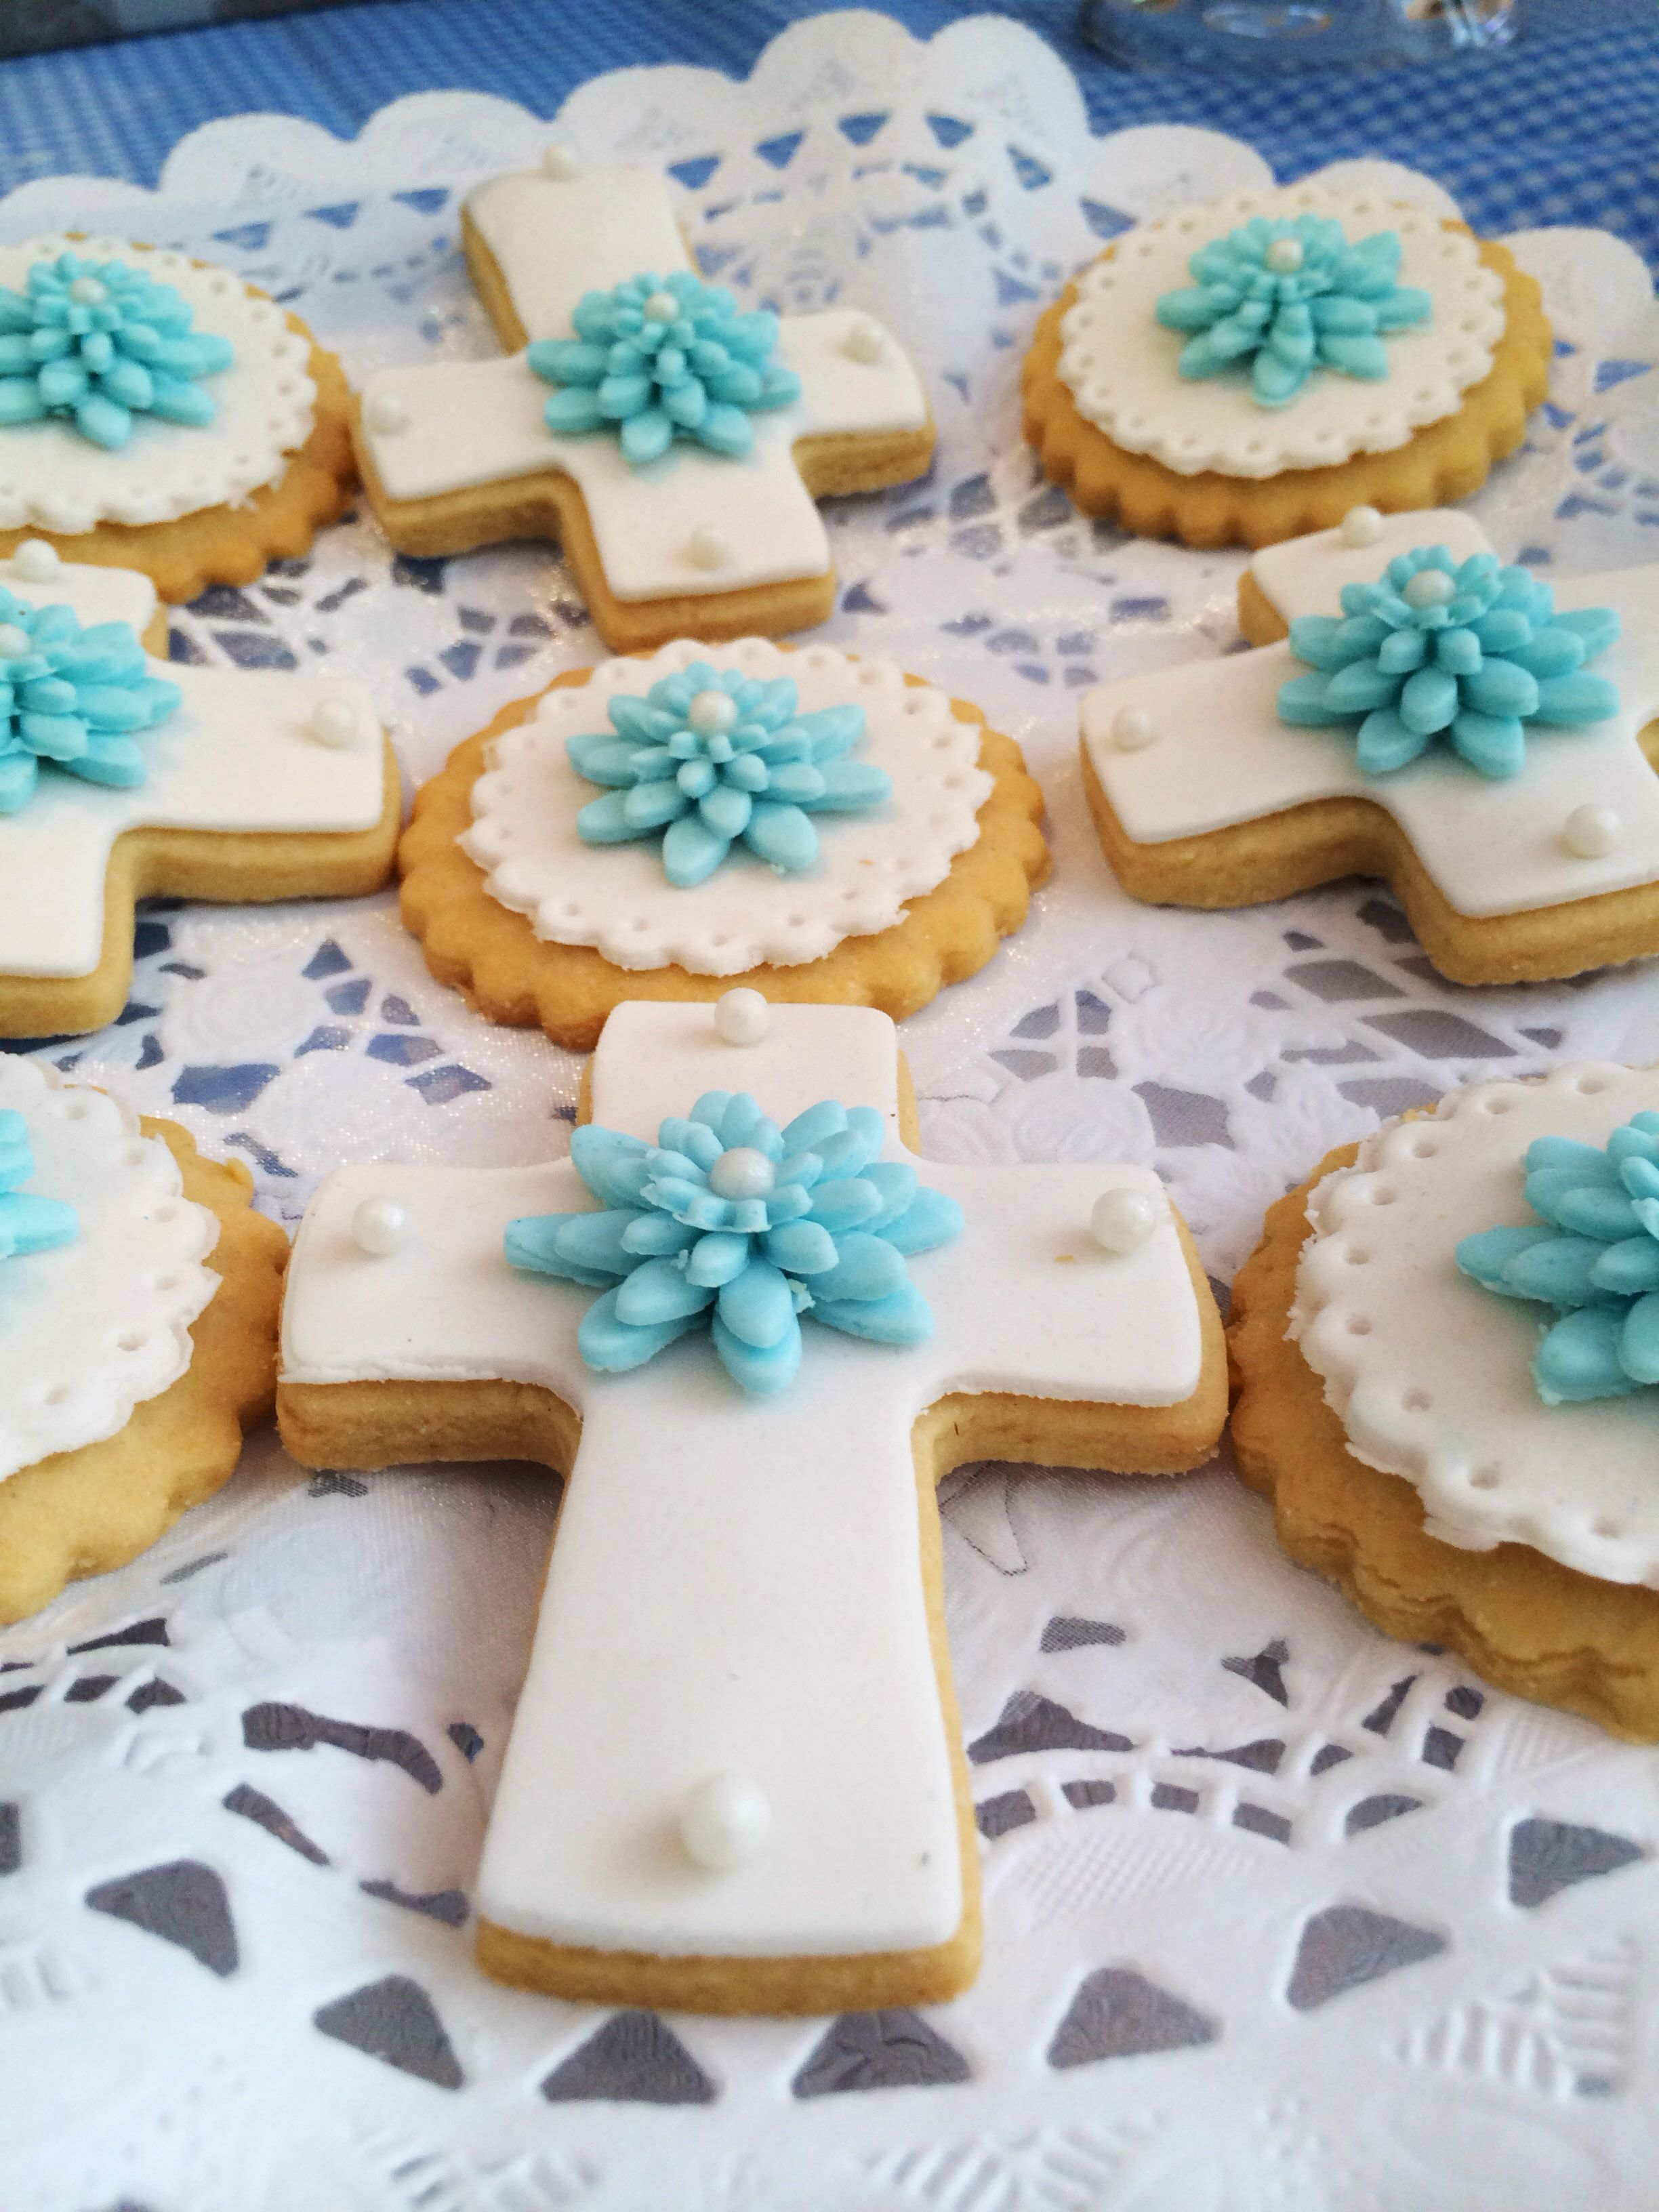 Galletas Decoradas Bautizo Galletas De Bautizo Galletas Pinterest Communion